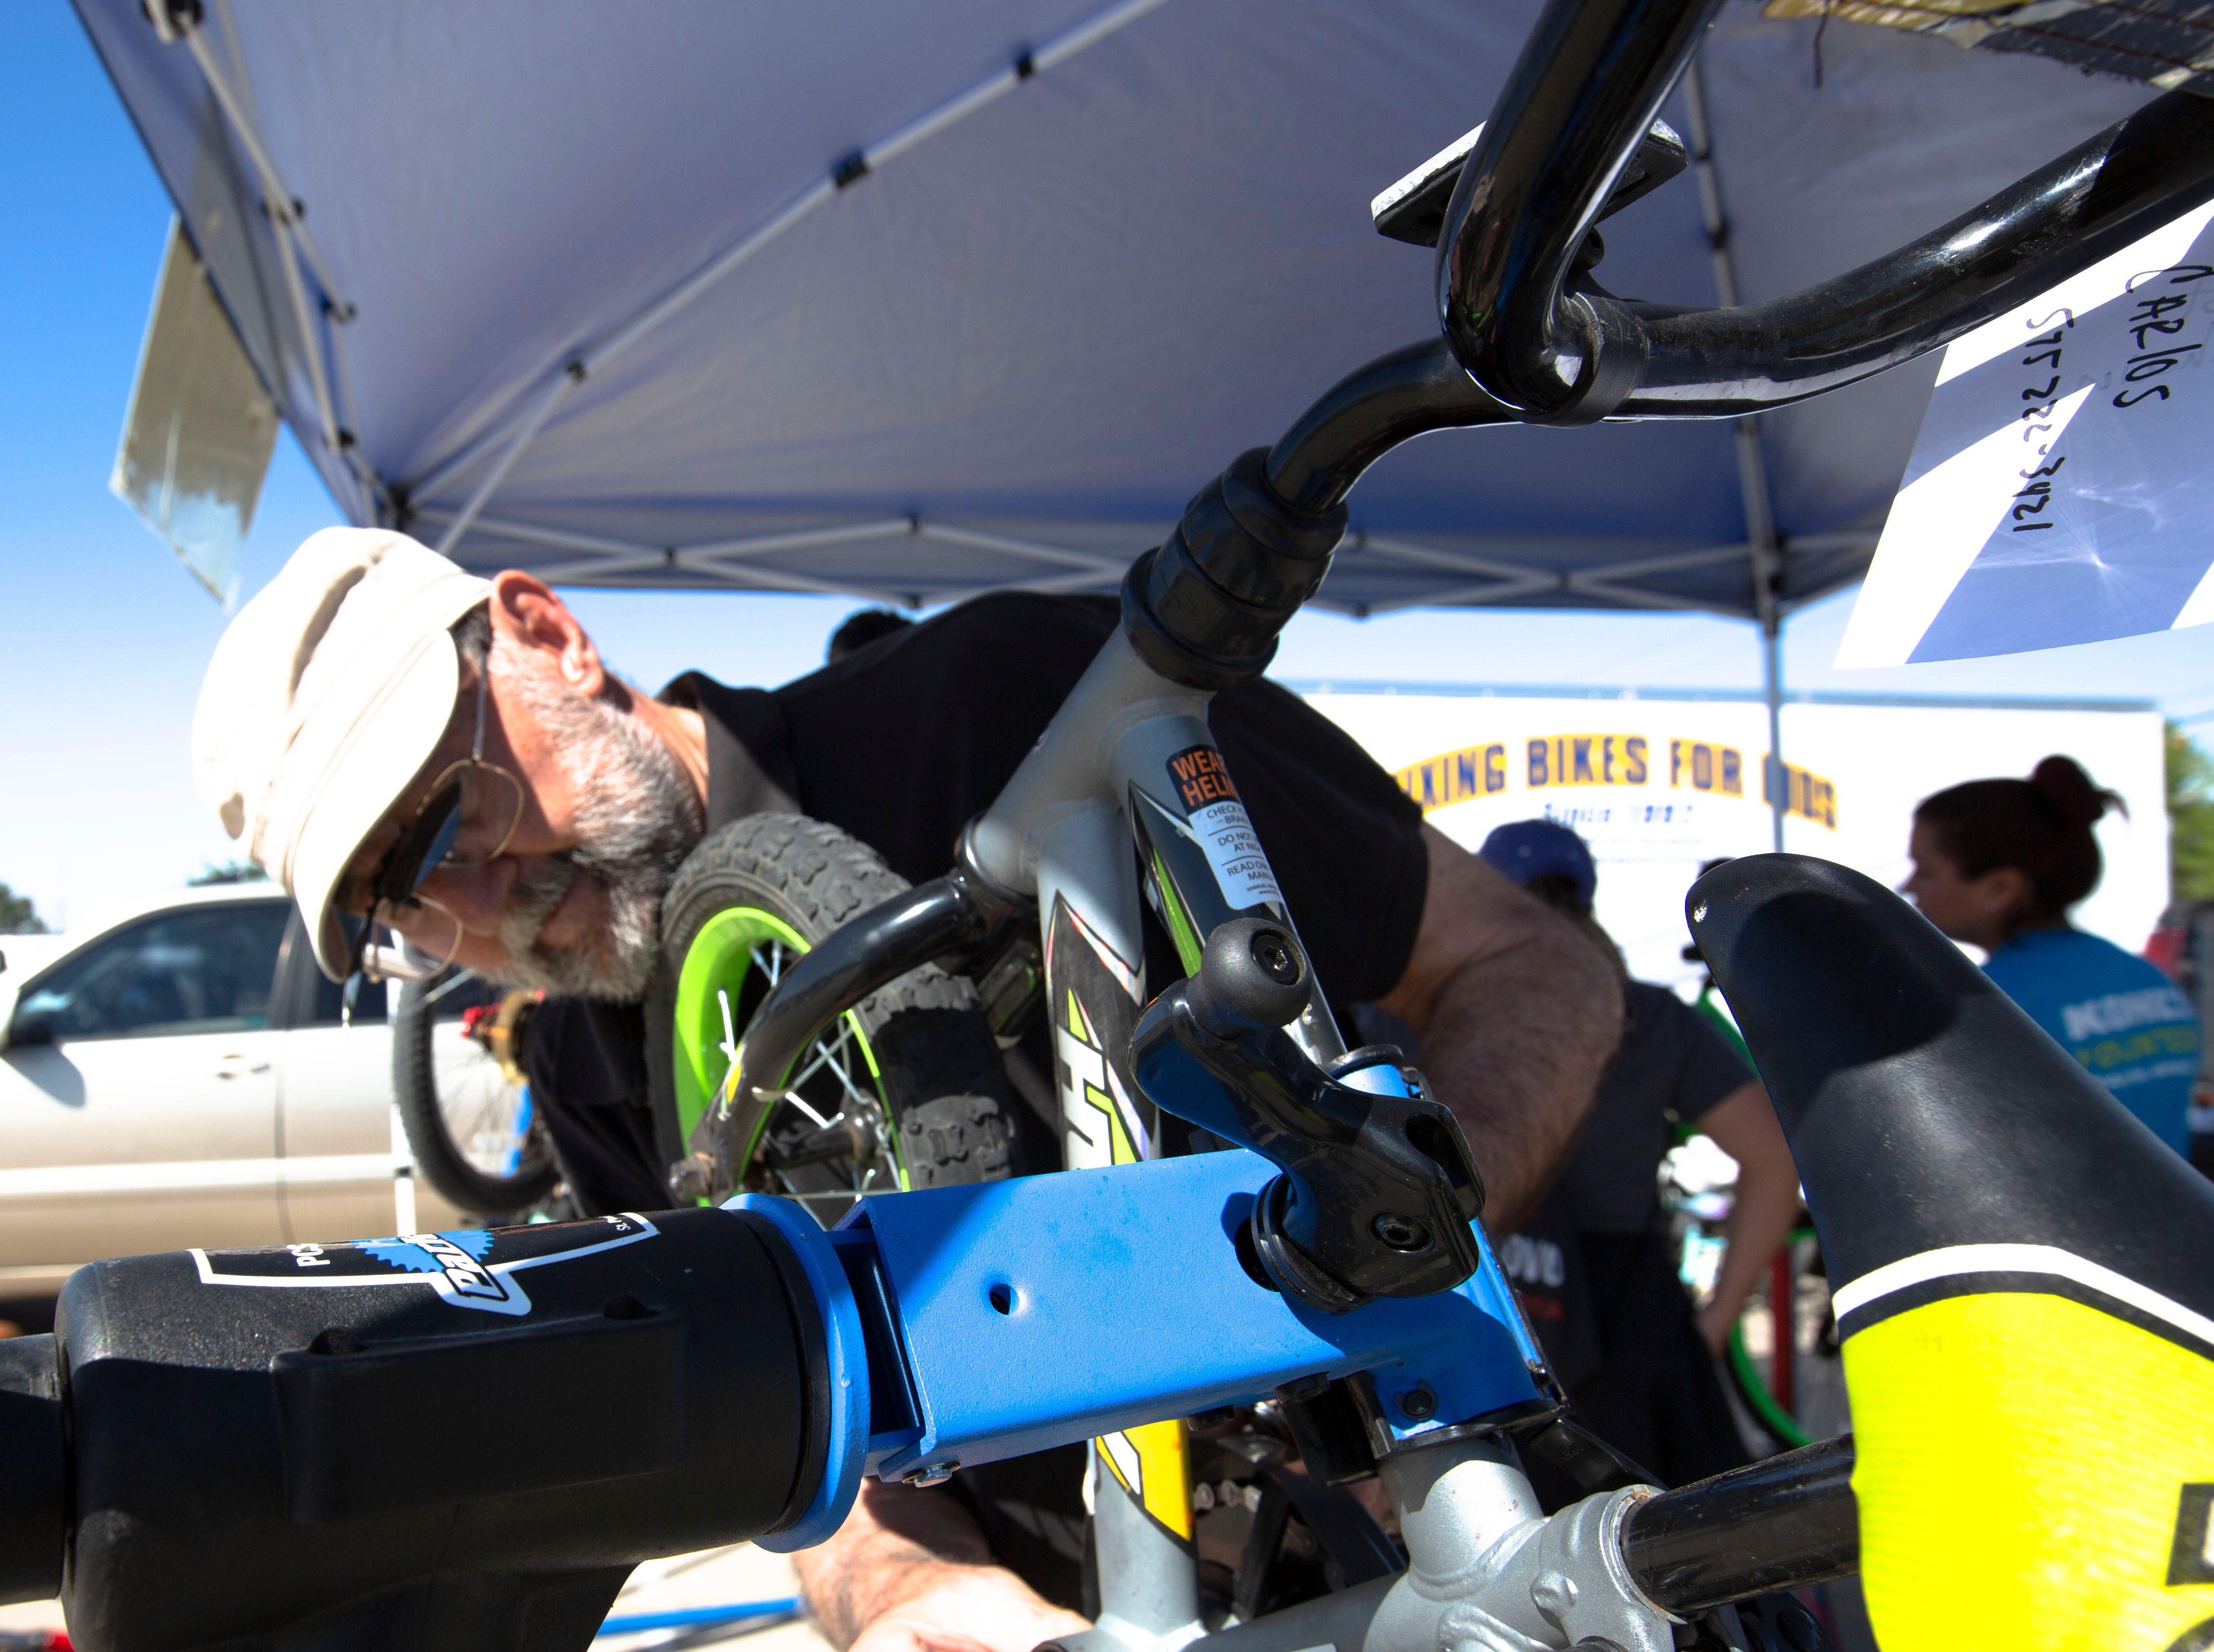 Doug Henson works to repair a child's bike Saturday, April 27, 2019, at the Family Bike Fiesta in Las Cruces.